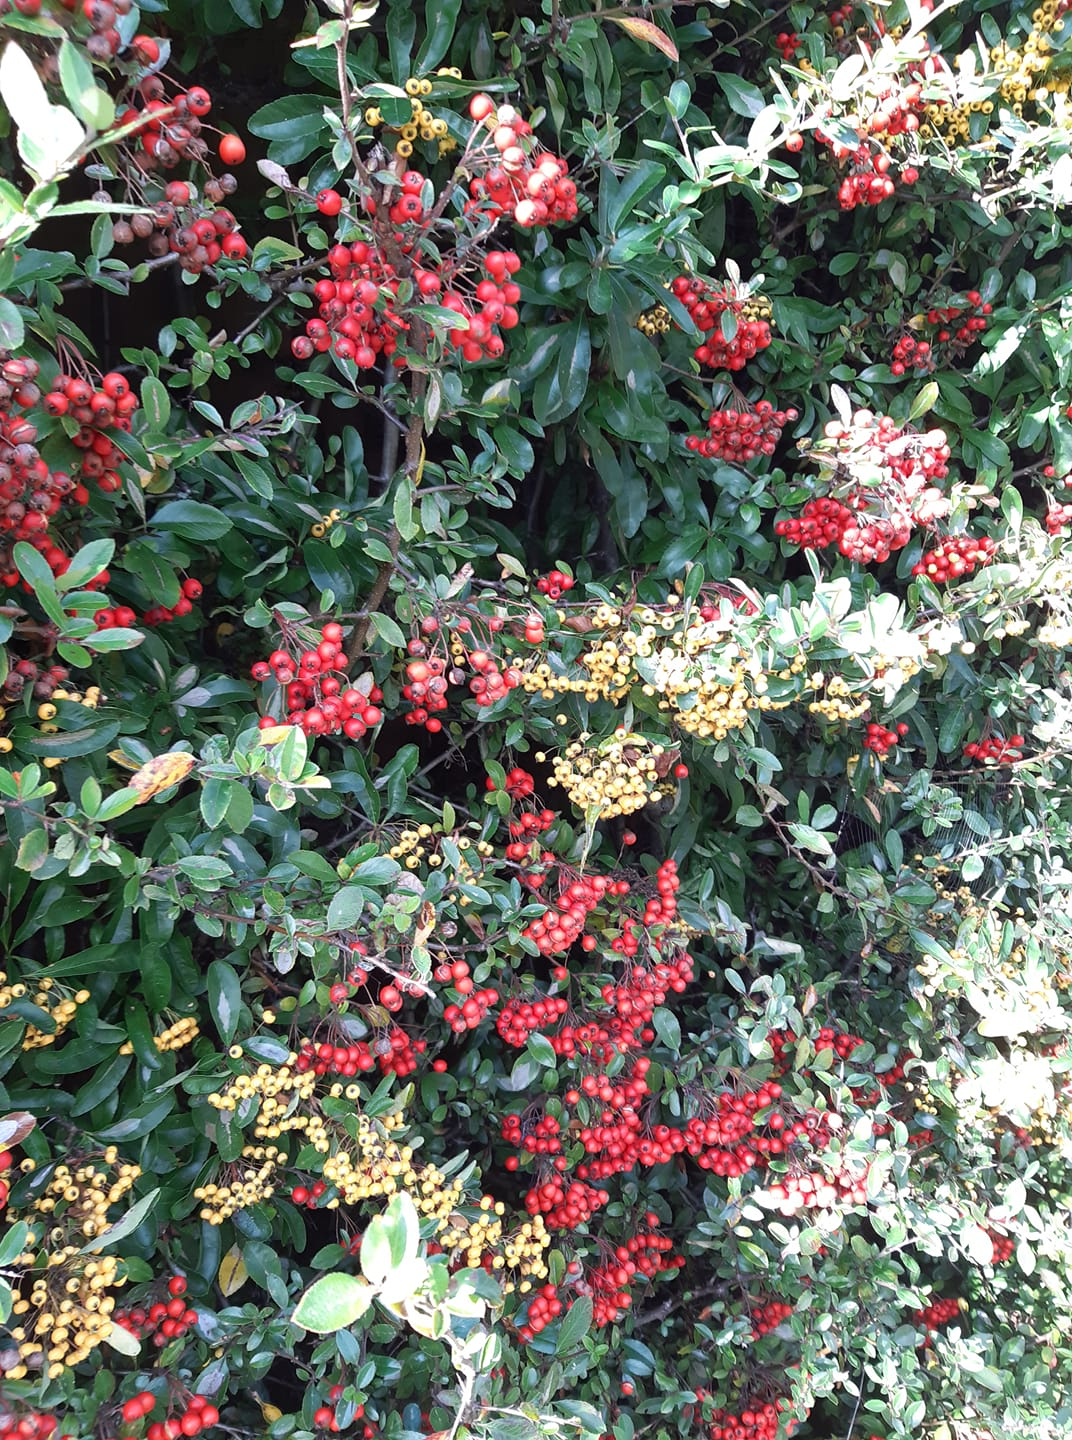 bush with berries on